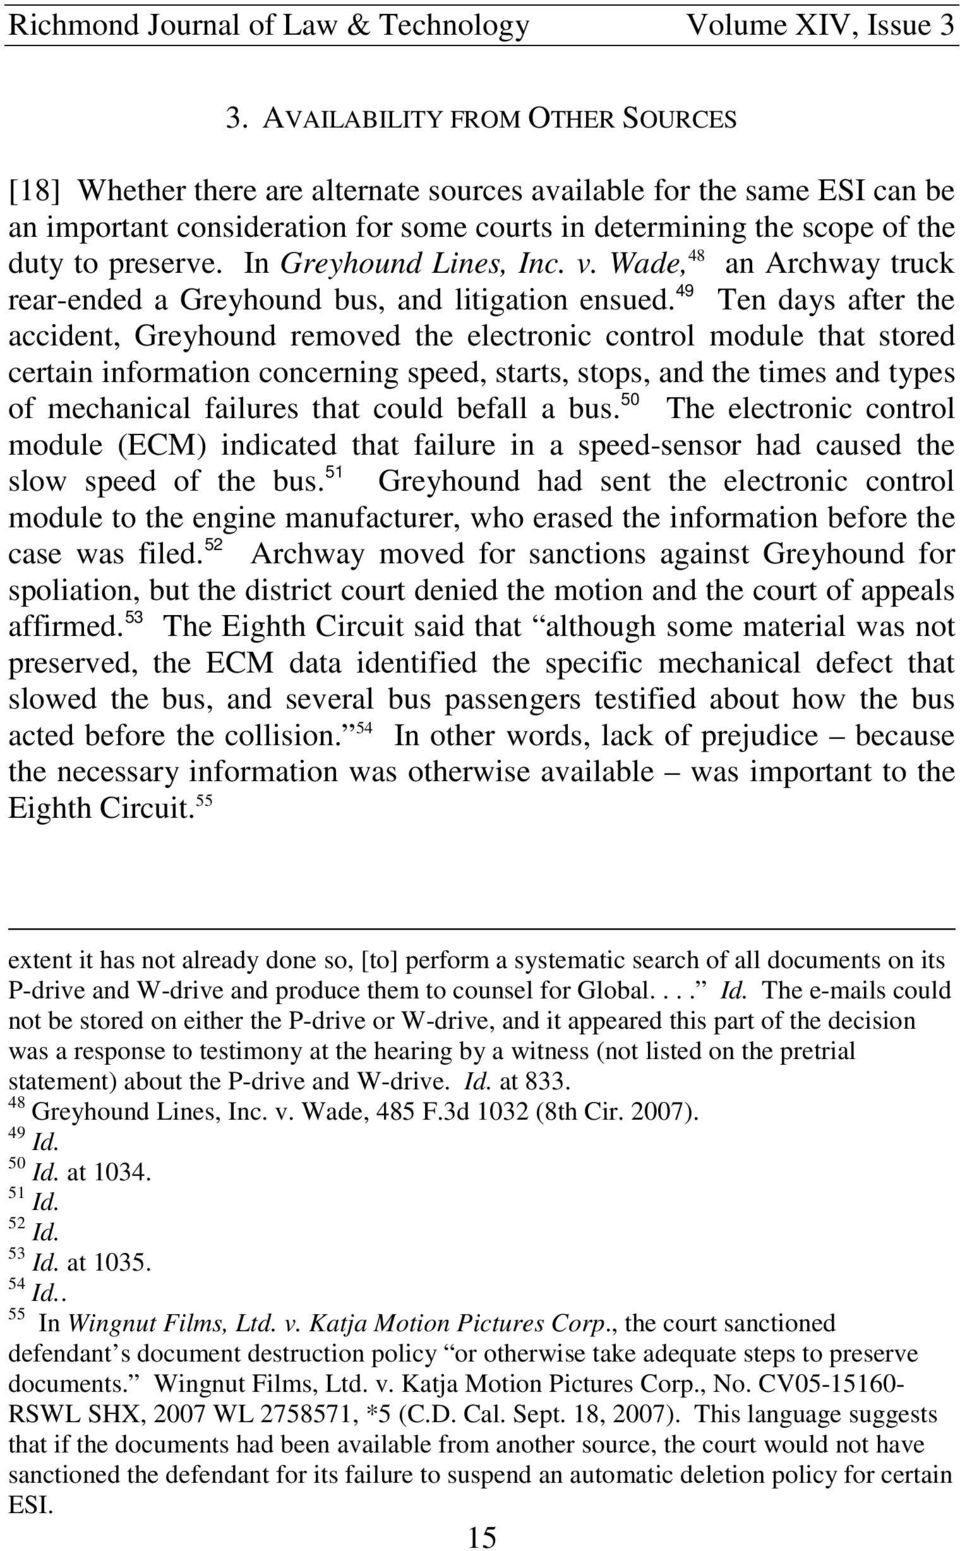 49 Ten days after the accident, Greyhound removed the electronic control module that stored certain information concerning speed, starts, stops, and the times and types of mechanical failures that